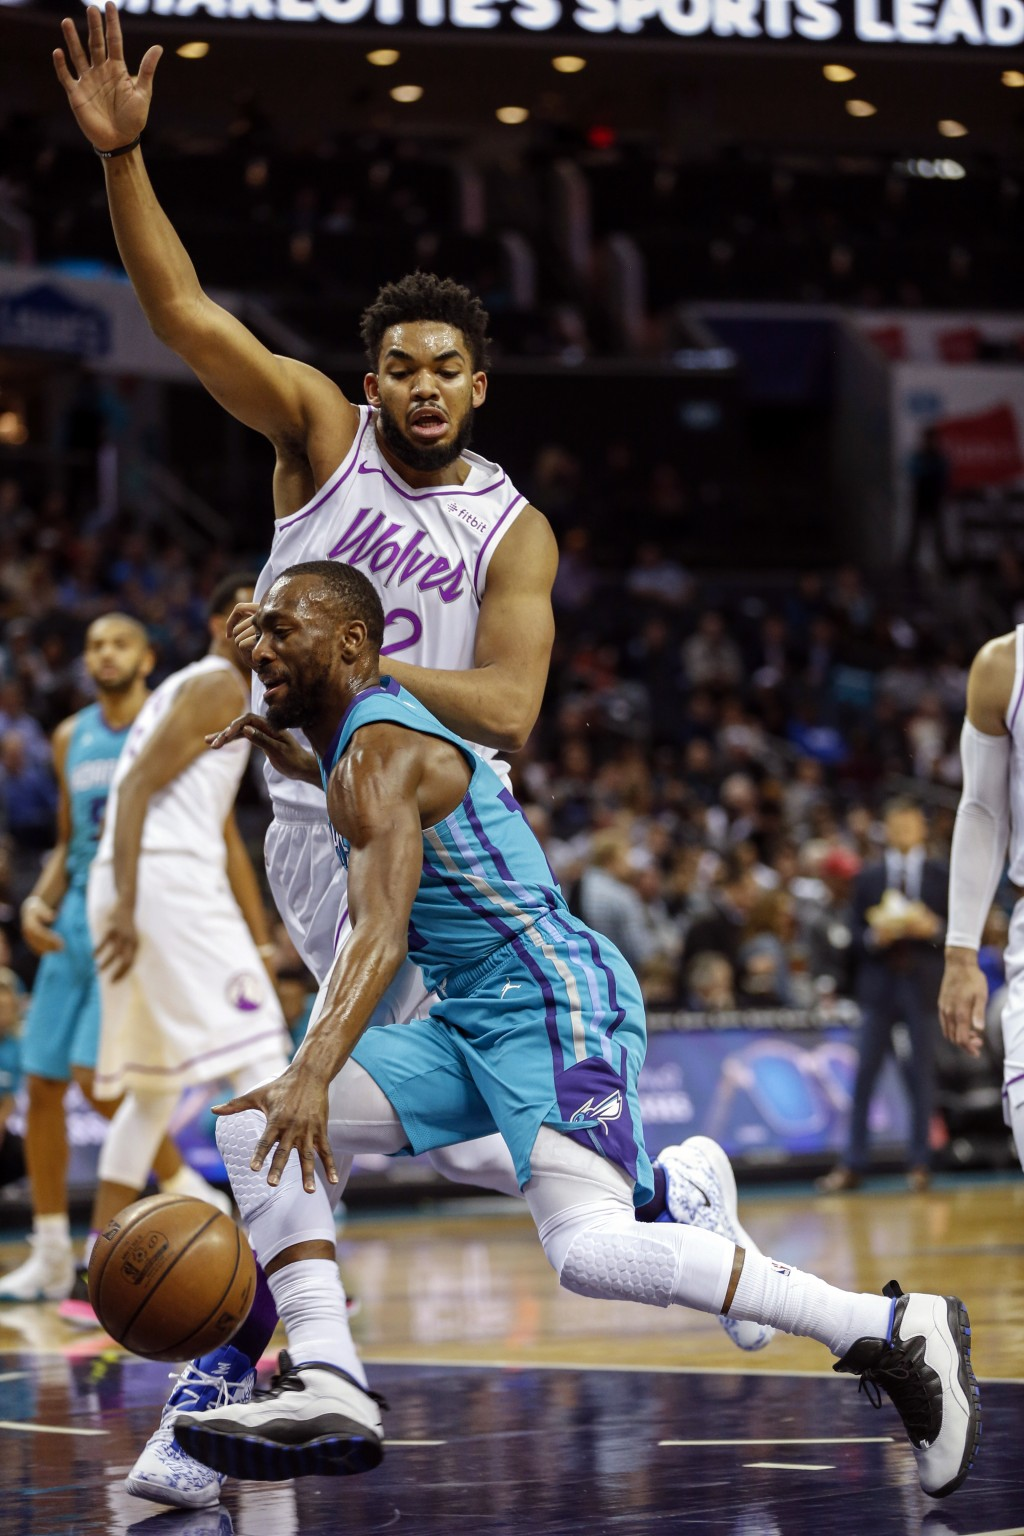 Charlotte Hornets guard Kemba Walker, front, drives into Minnesota Timberwolves center Karl-Anthony Towns in the first half of an NBA basketball game